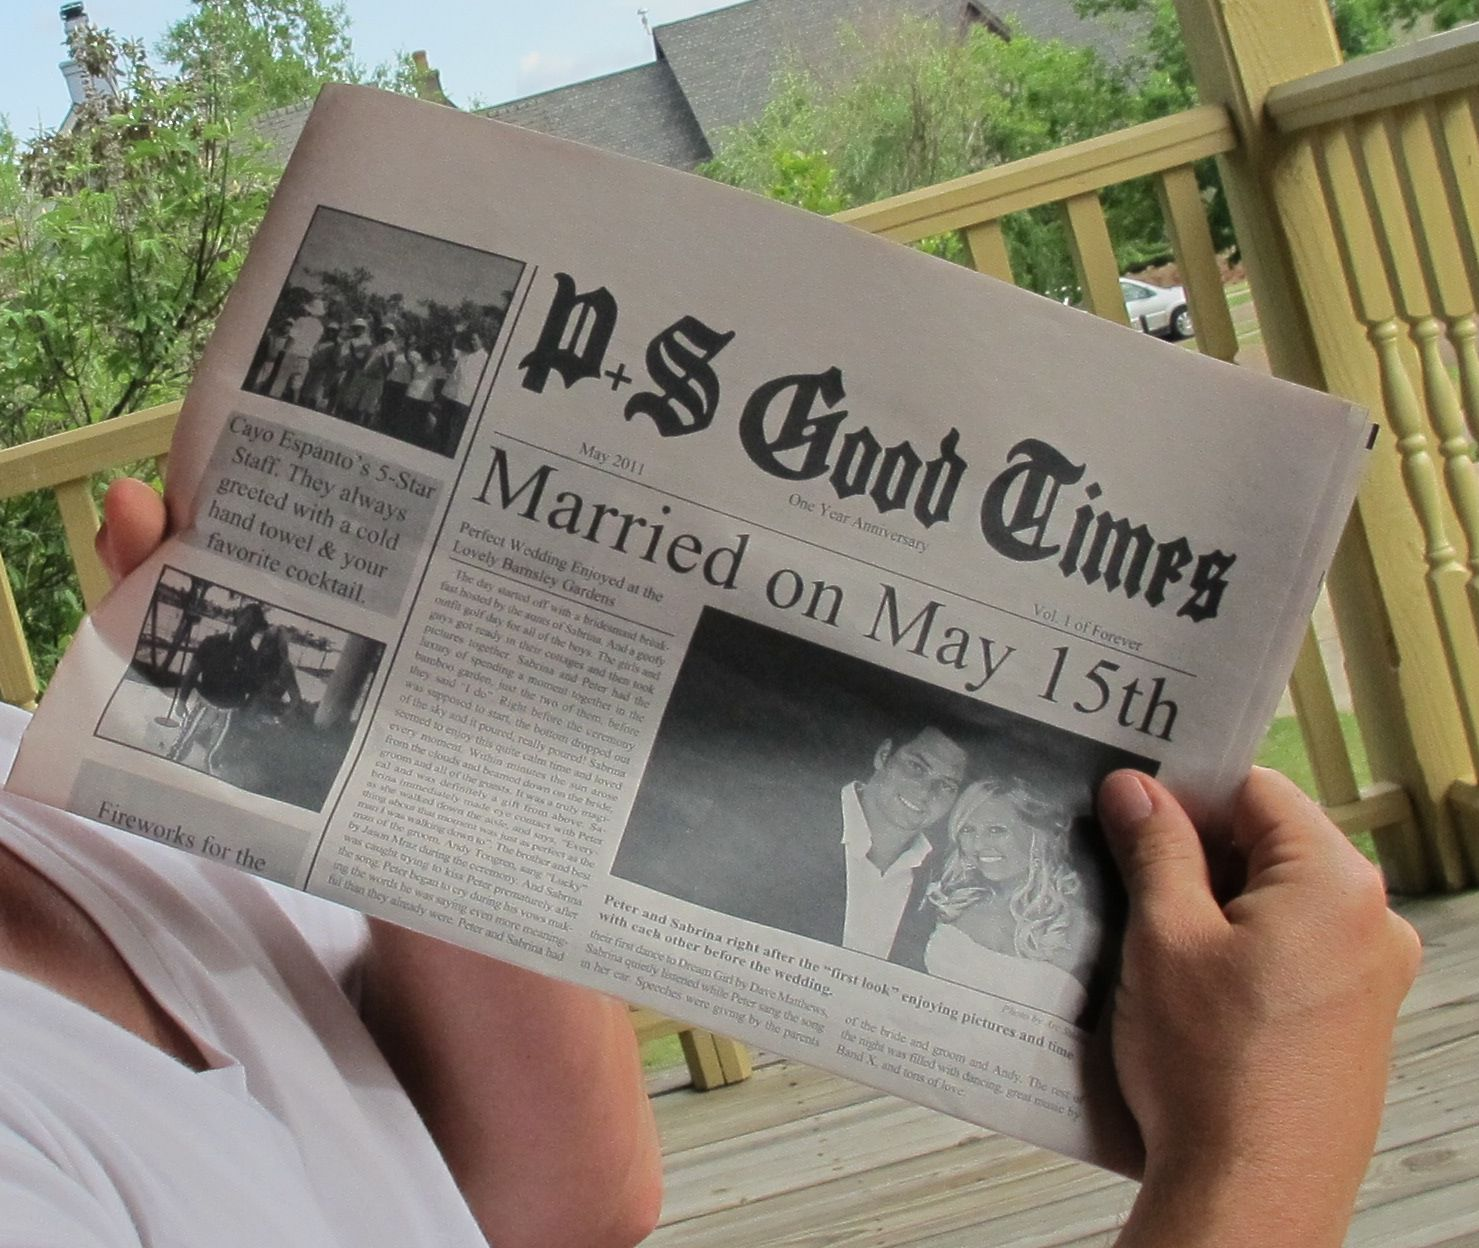 One Year Wedding Anniversary Gifts: Newspaper Of Your First Year